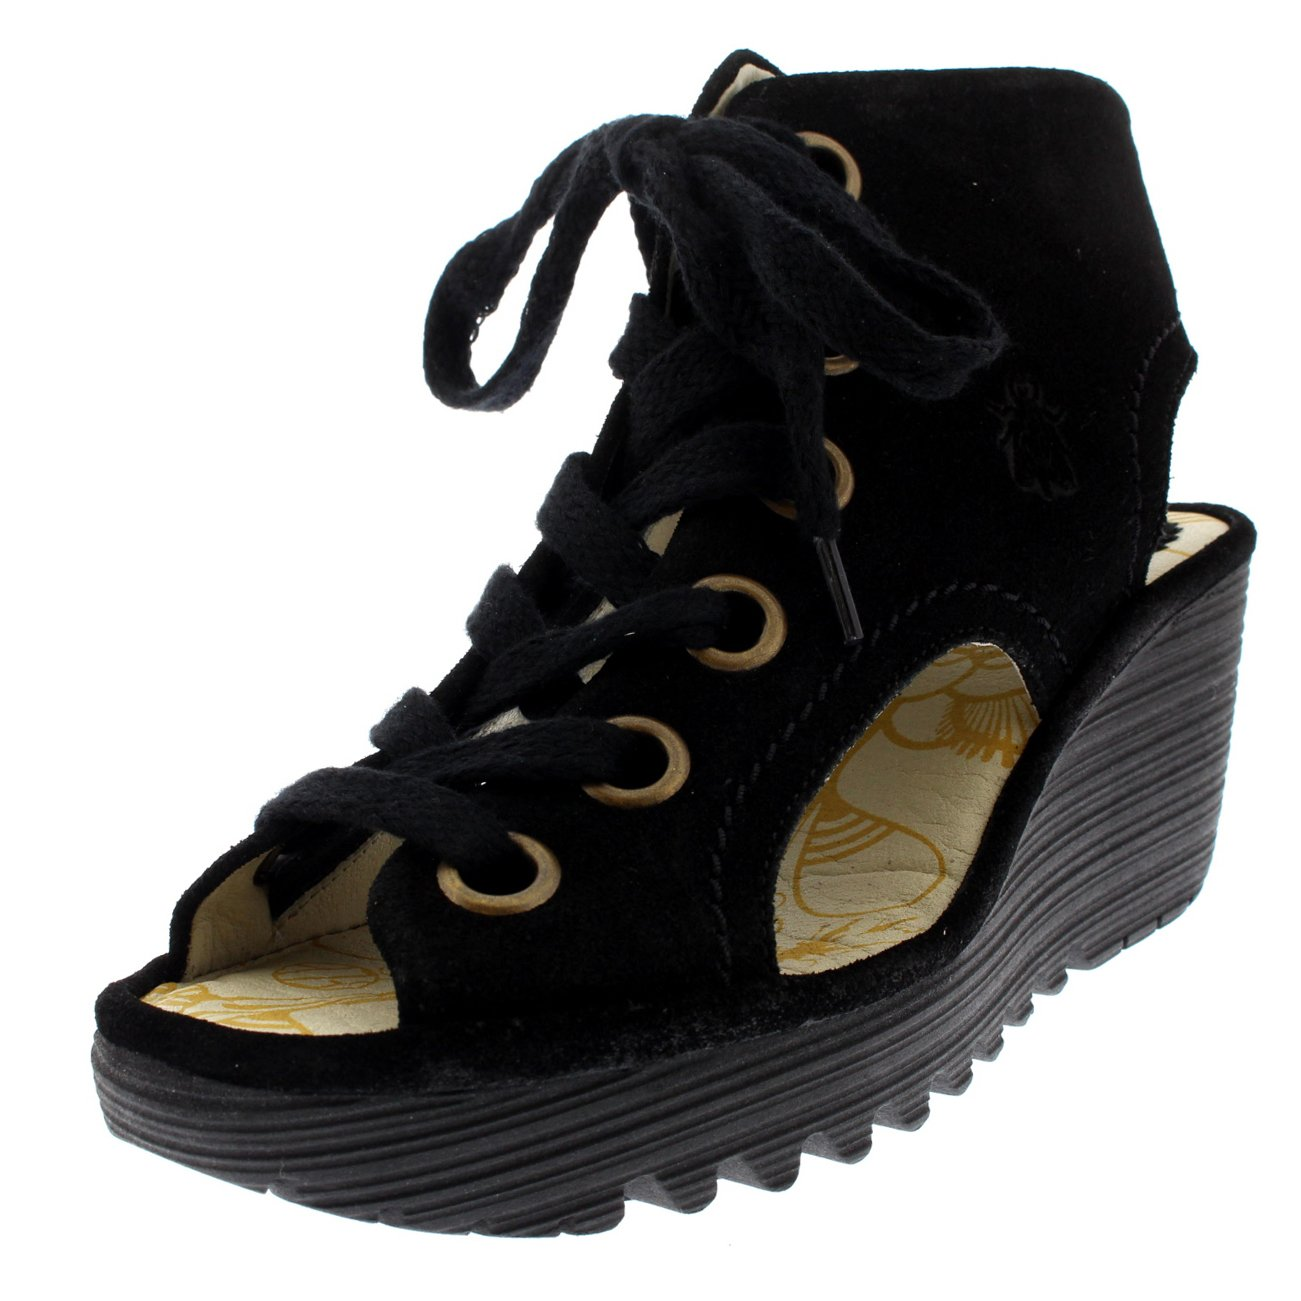 Womens Fly London Yaba Lace Up Open Toe Summer Suede Shoes Wedge Heel - Black - 8